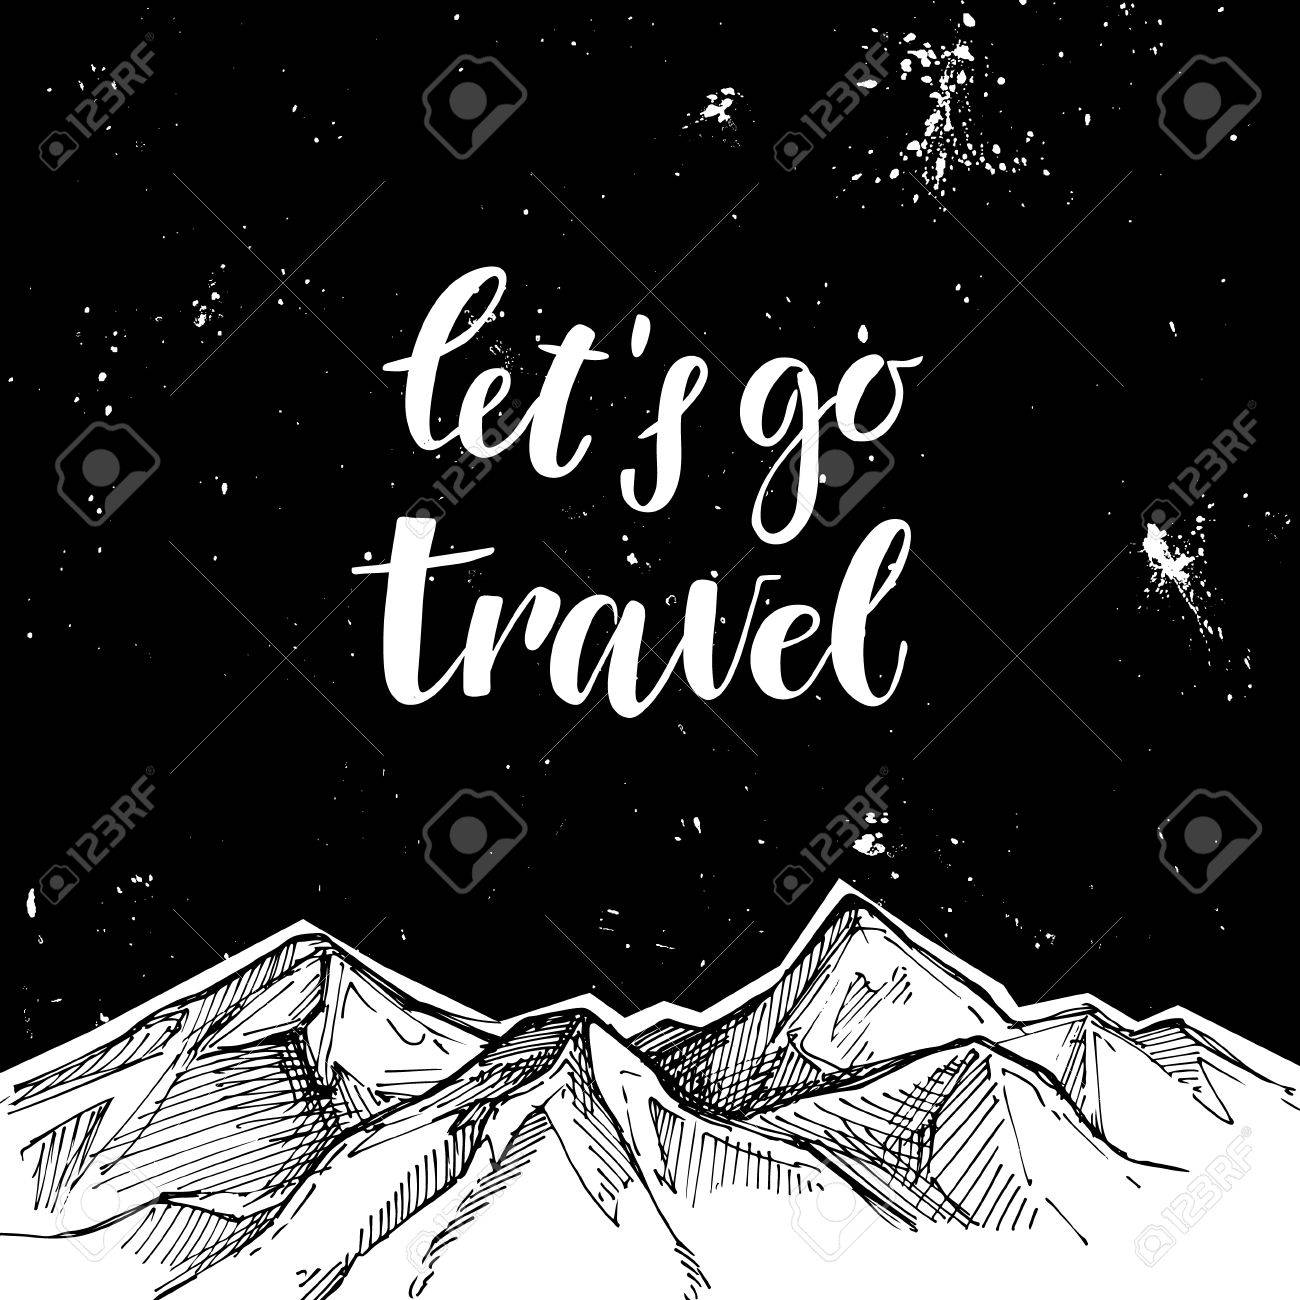 Go Style Template | Hand Drawn Vector Illustration Mountains And Starry Sky Let S